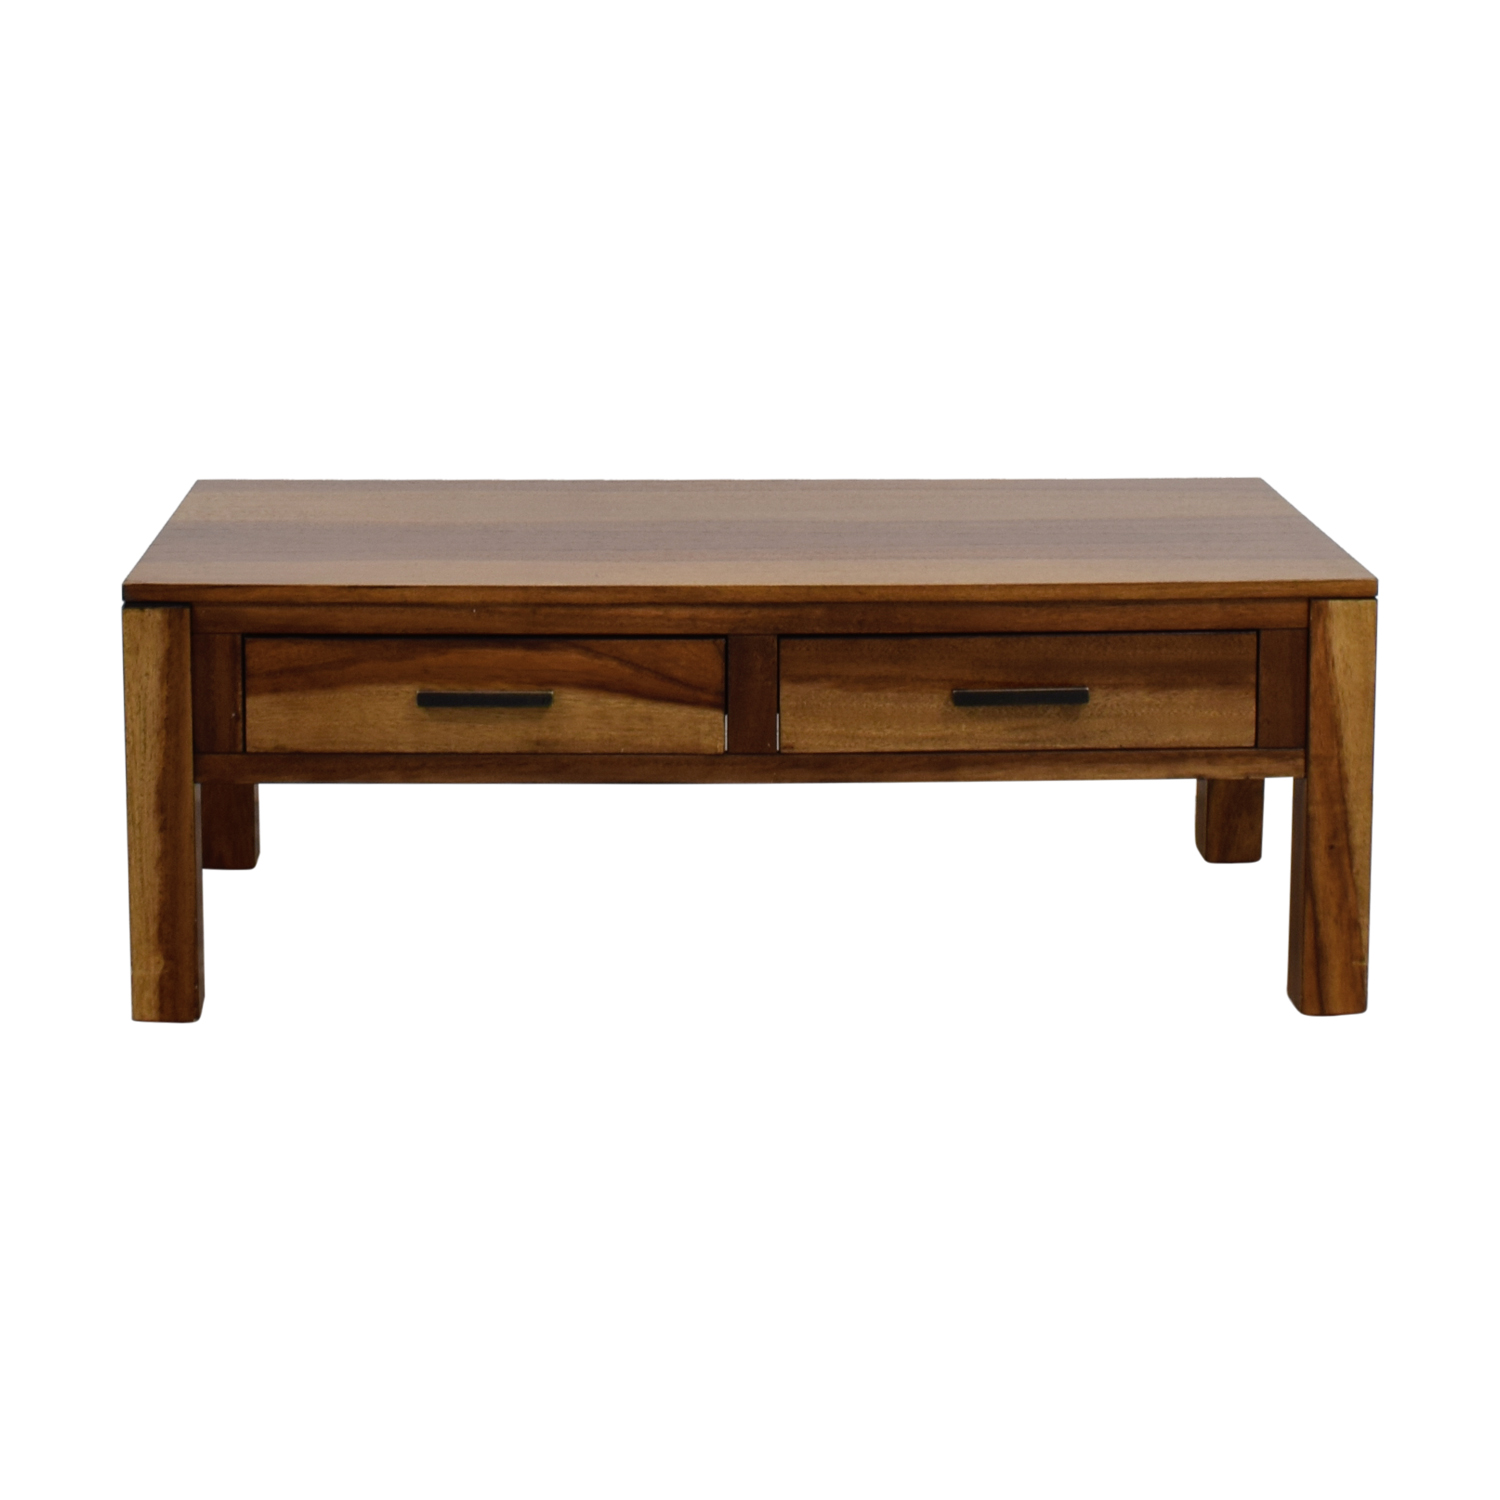 51 off coaster coaster coffee table with two drawers tables Coaster coffee tables